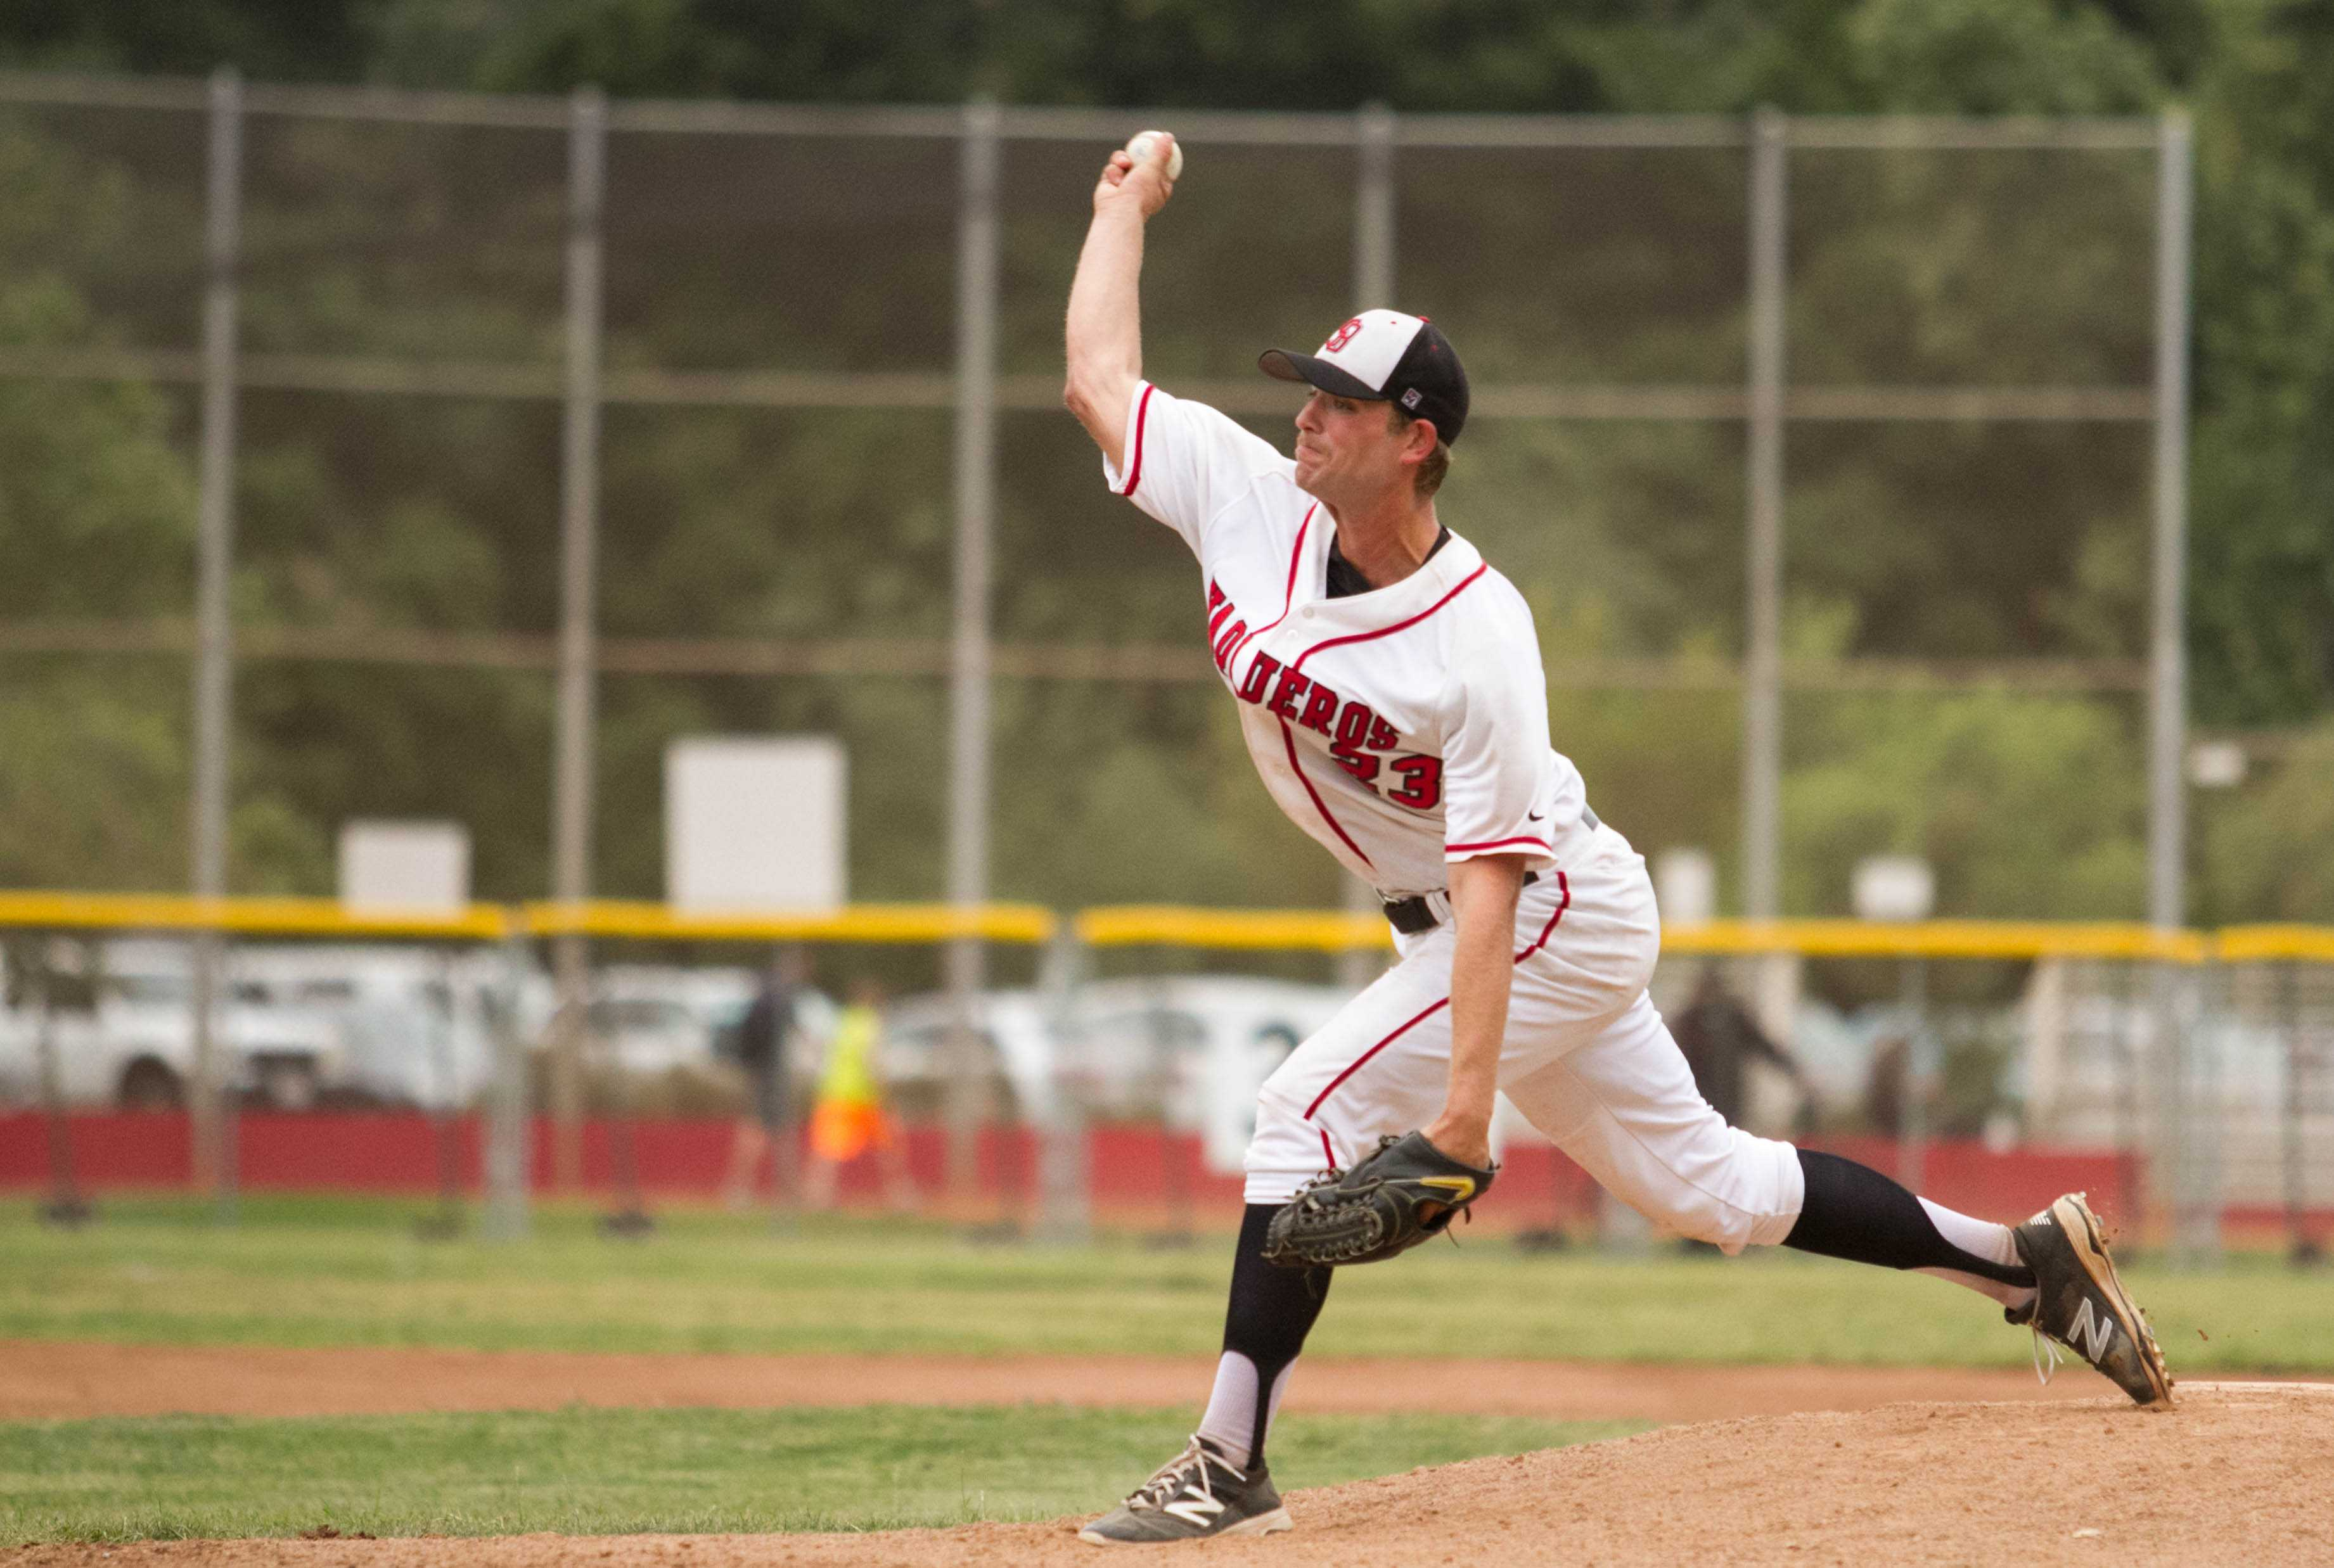 Vaquero's Pitcher Ian Clark (No. 23) contributed to the team's four game winning streak, now moving them in first place in Western State Conference North Division on Thursday, April 7, at Pershing Park in Santa Barbara. The Vaqueros beat Oxnard 2-0.